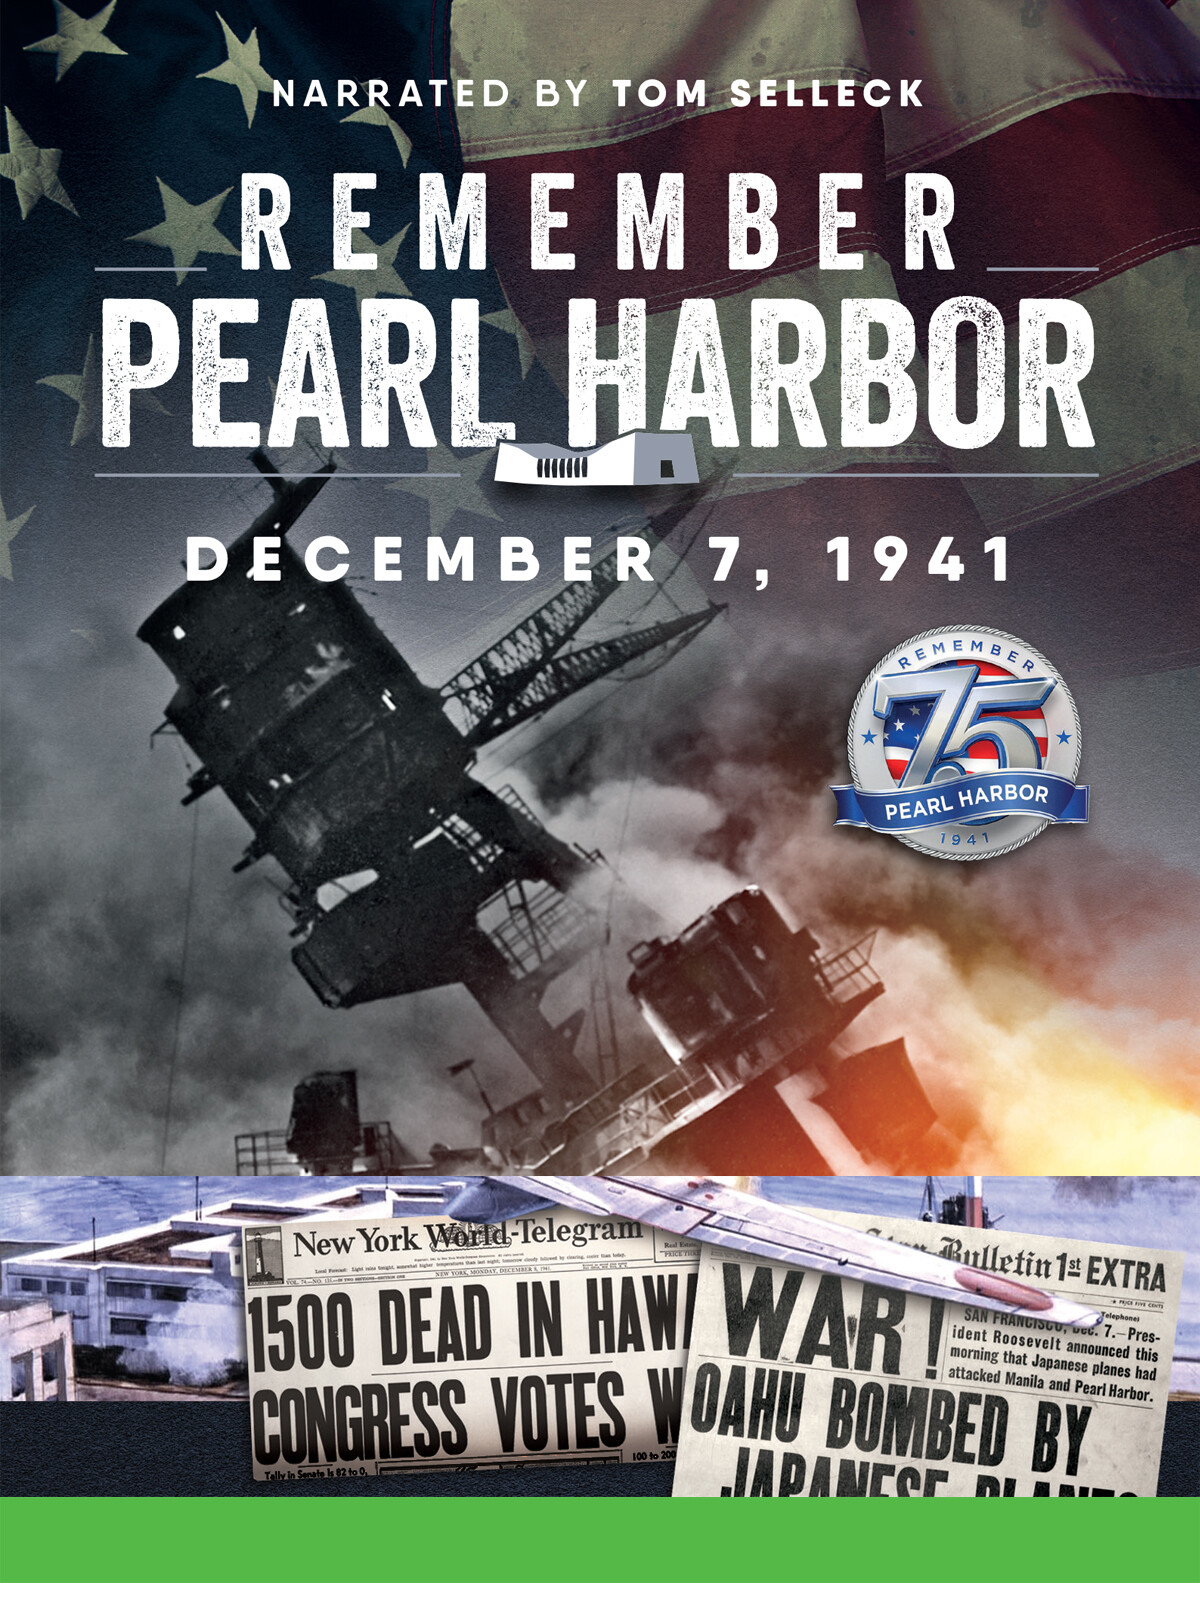 JW2616 - Remember Pearl Harbor Narrated by Tom Selleck